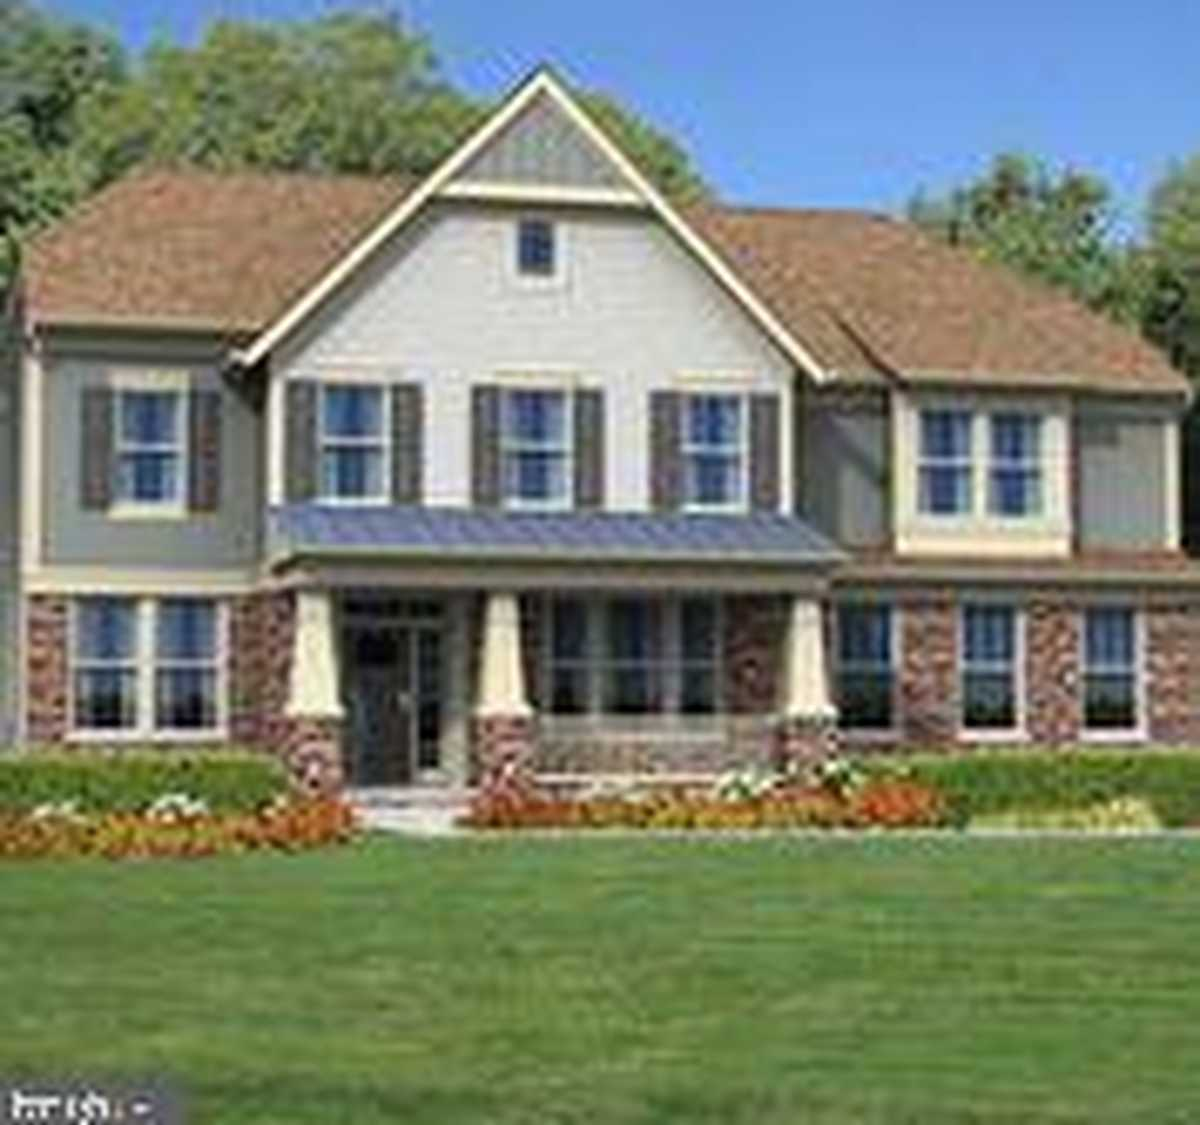 $625,900 - 4Br/3Ba -  for Sale in Village Of Bayberry, Middletown